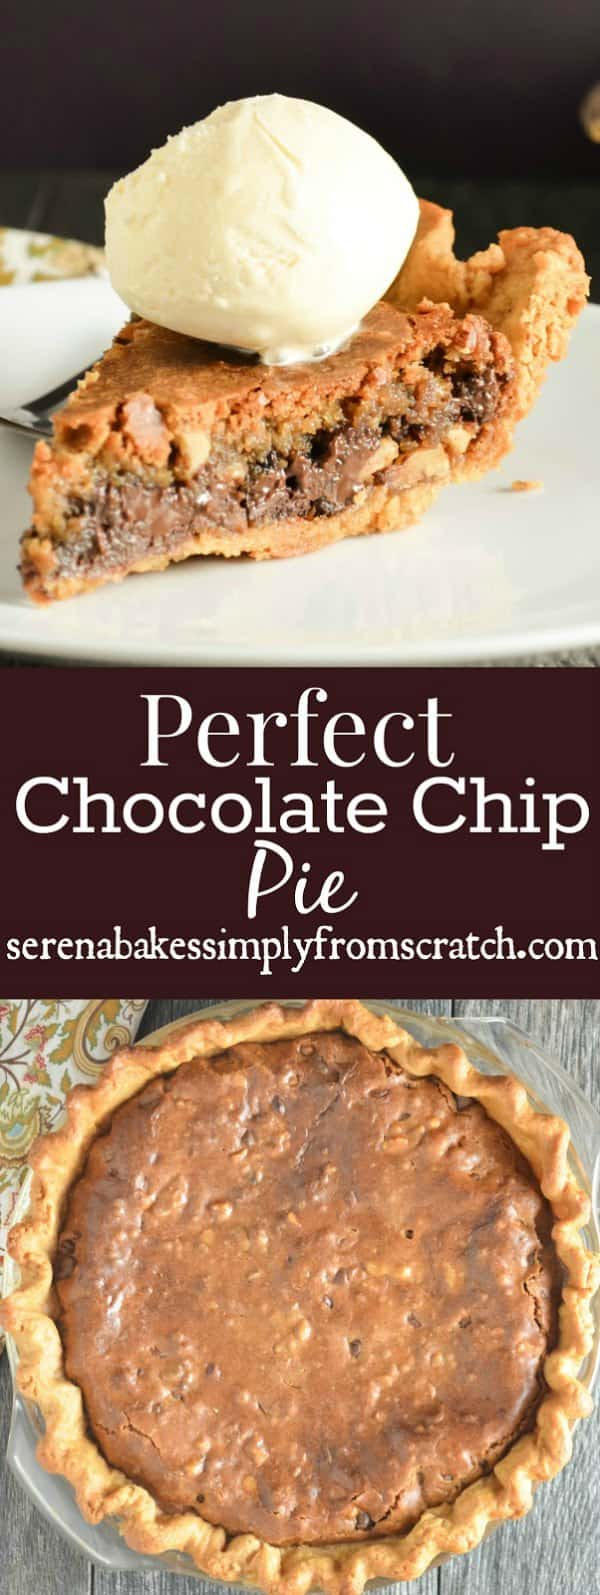 Chocolate Chip Pie is a brown butter chocolate chip cookie with a crispy outside and soft chewy center in a flaky pie crust from Serena Bakes Simply from Scratch.